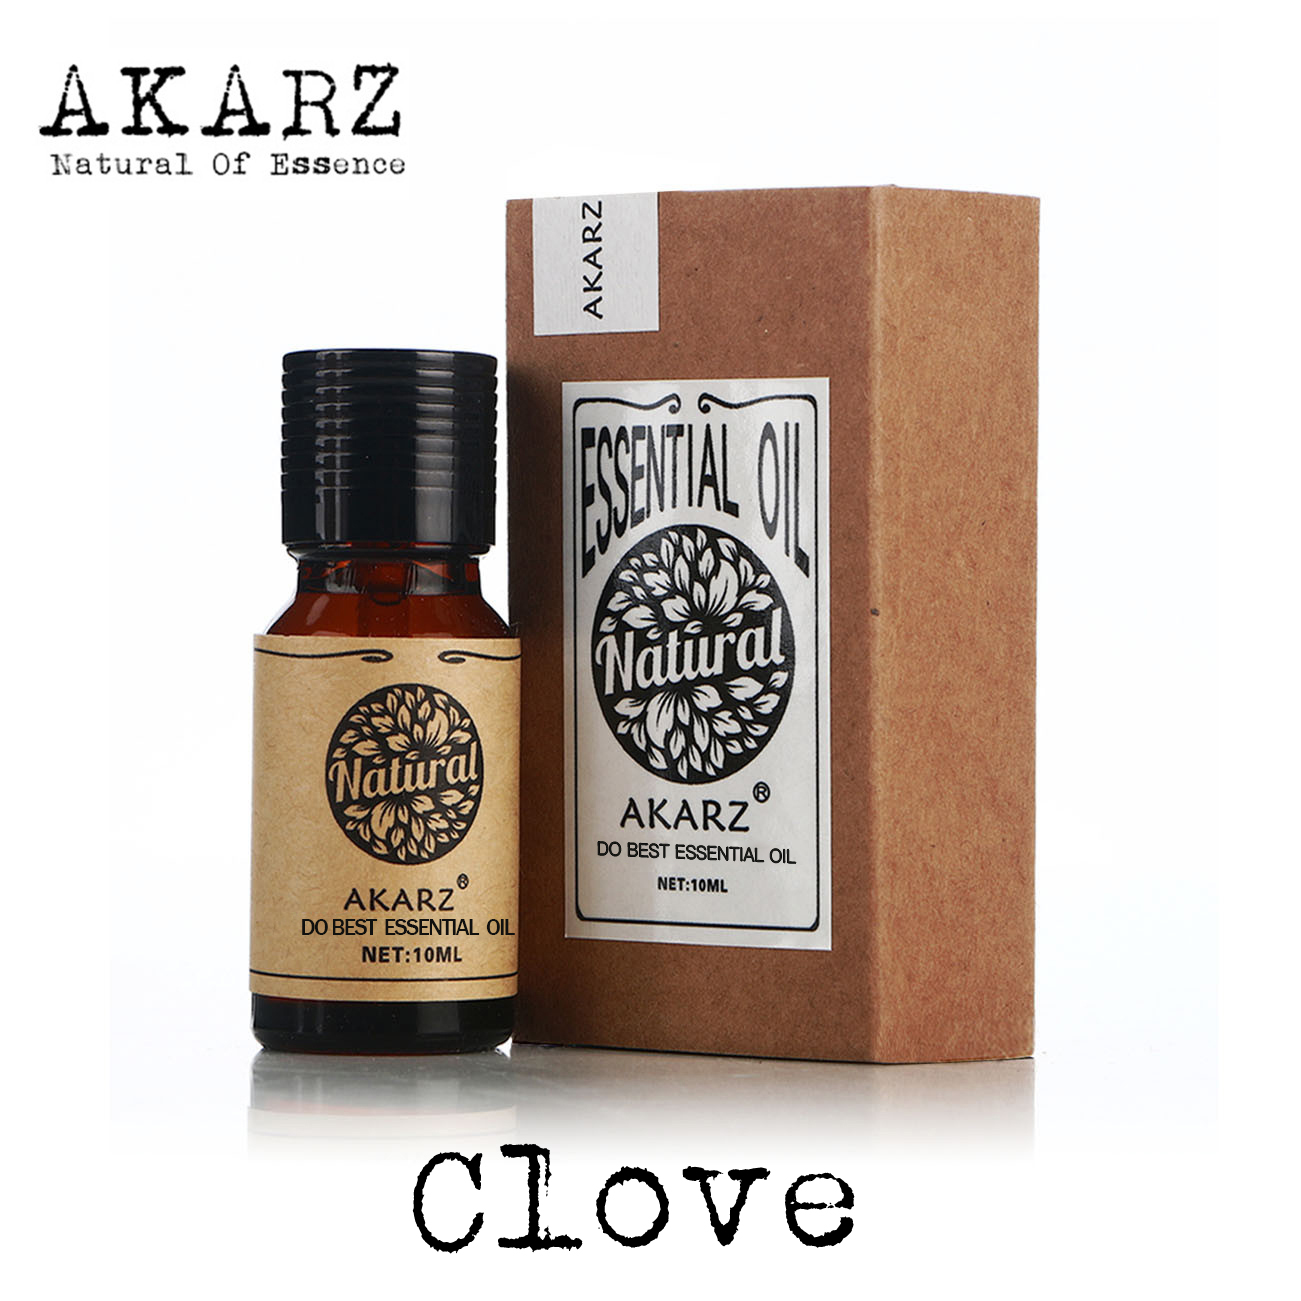 AKARZ Famous brand natural aromatherapy Clove Essential Oil leisurely Improve rough skin Relieve pain Clove Oil